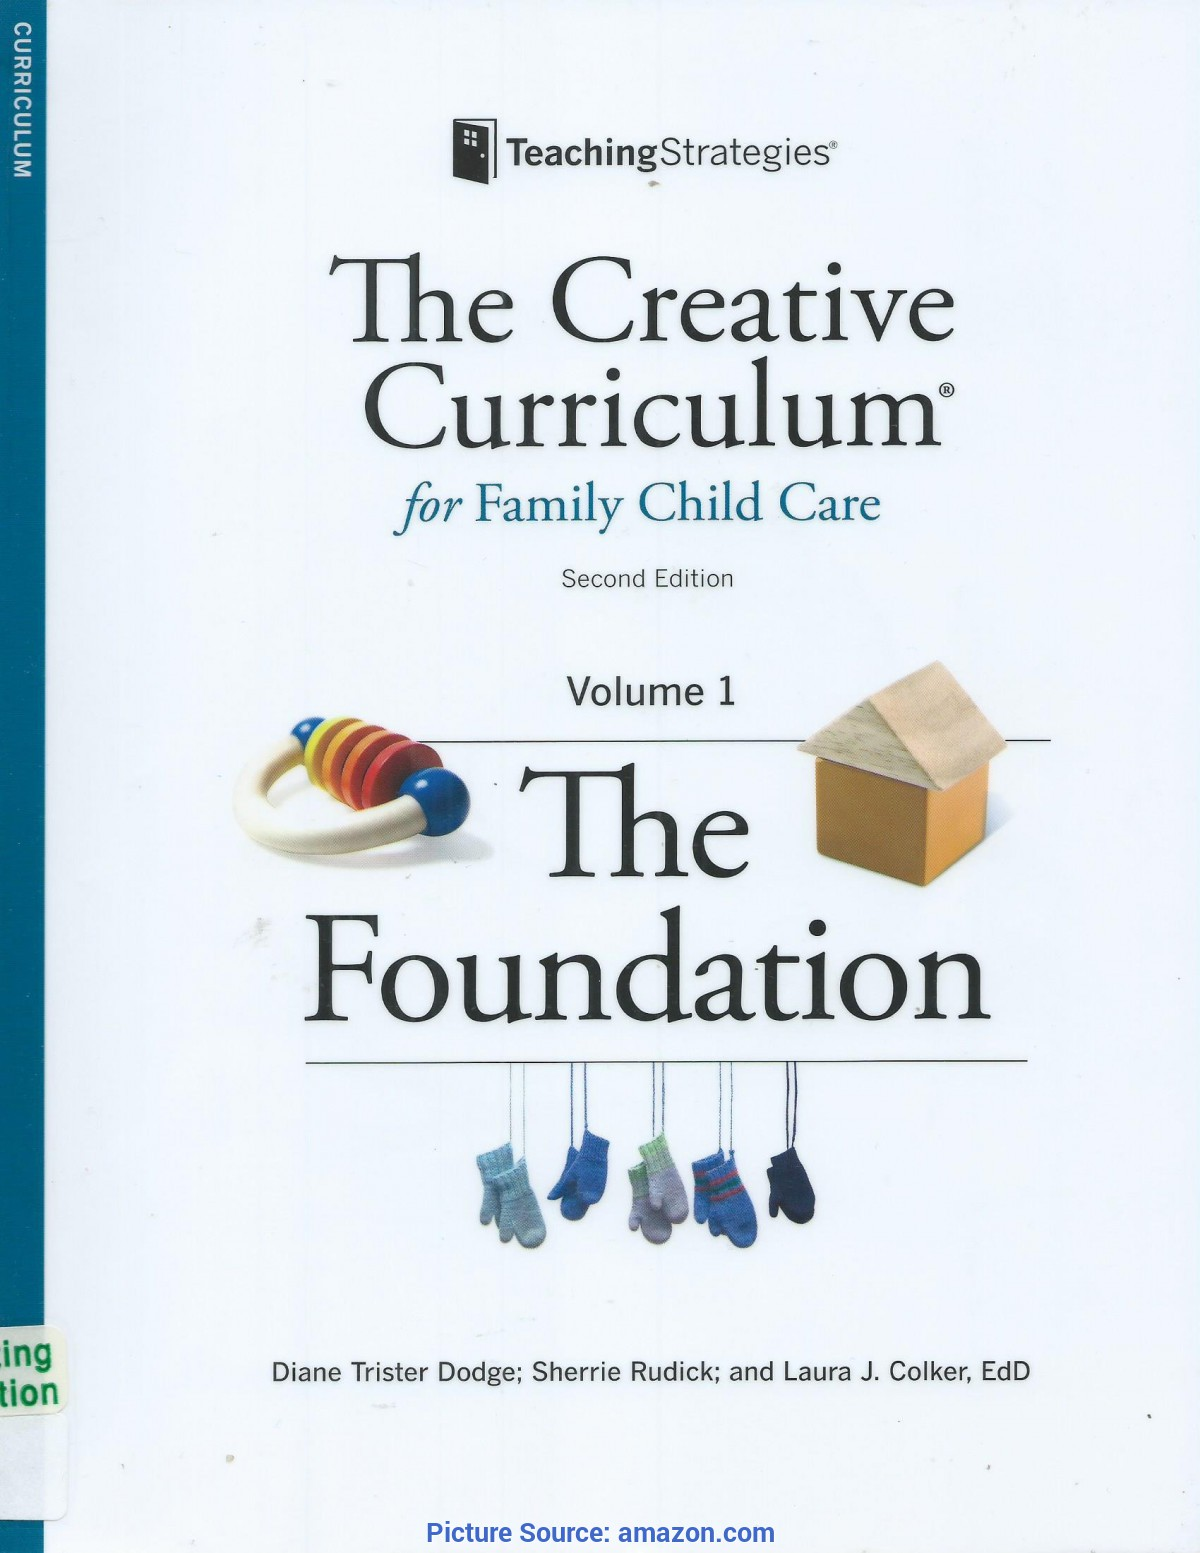 Good The Creative Curriculum For Preschool Volume 1 The Foundation The Creative Curriculum For Family Child Care - Volume 1: Th